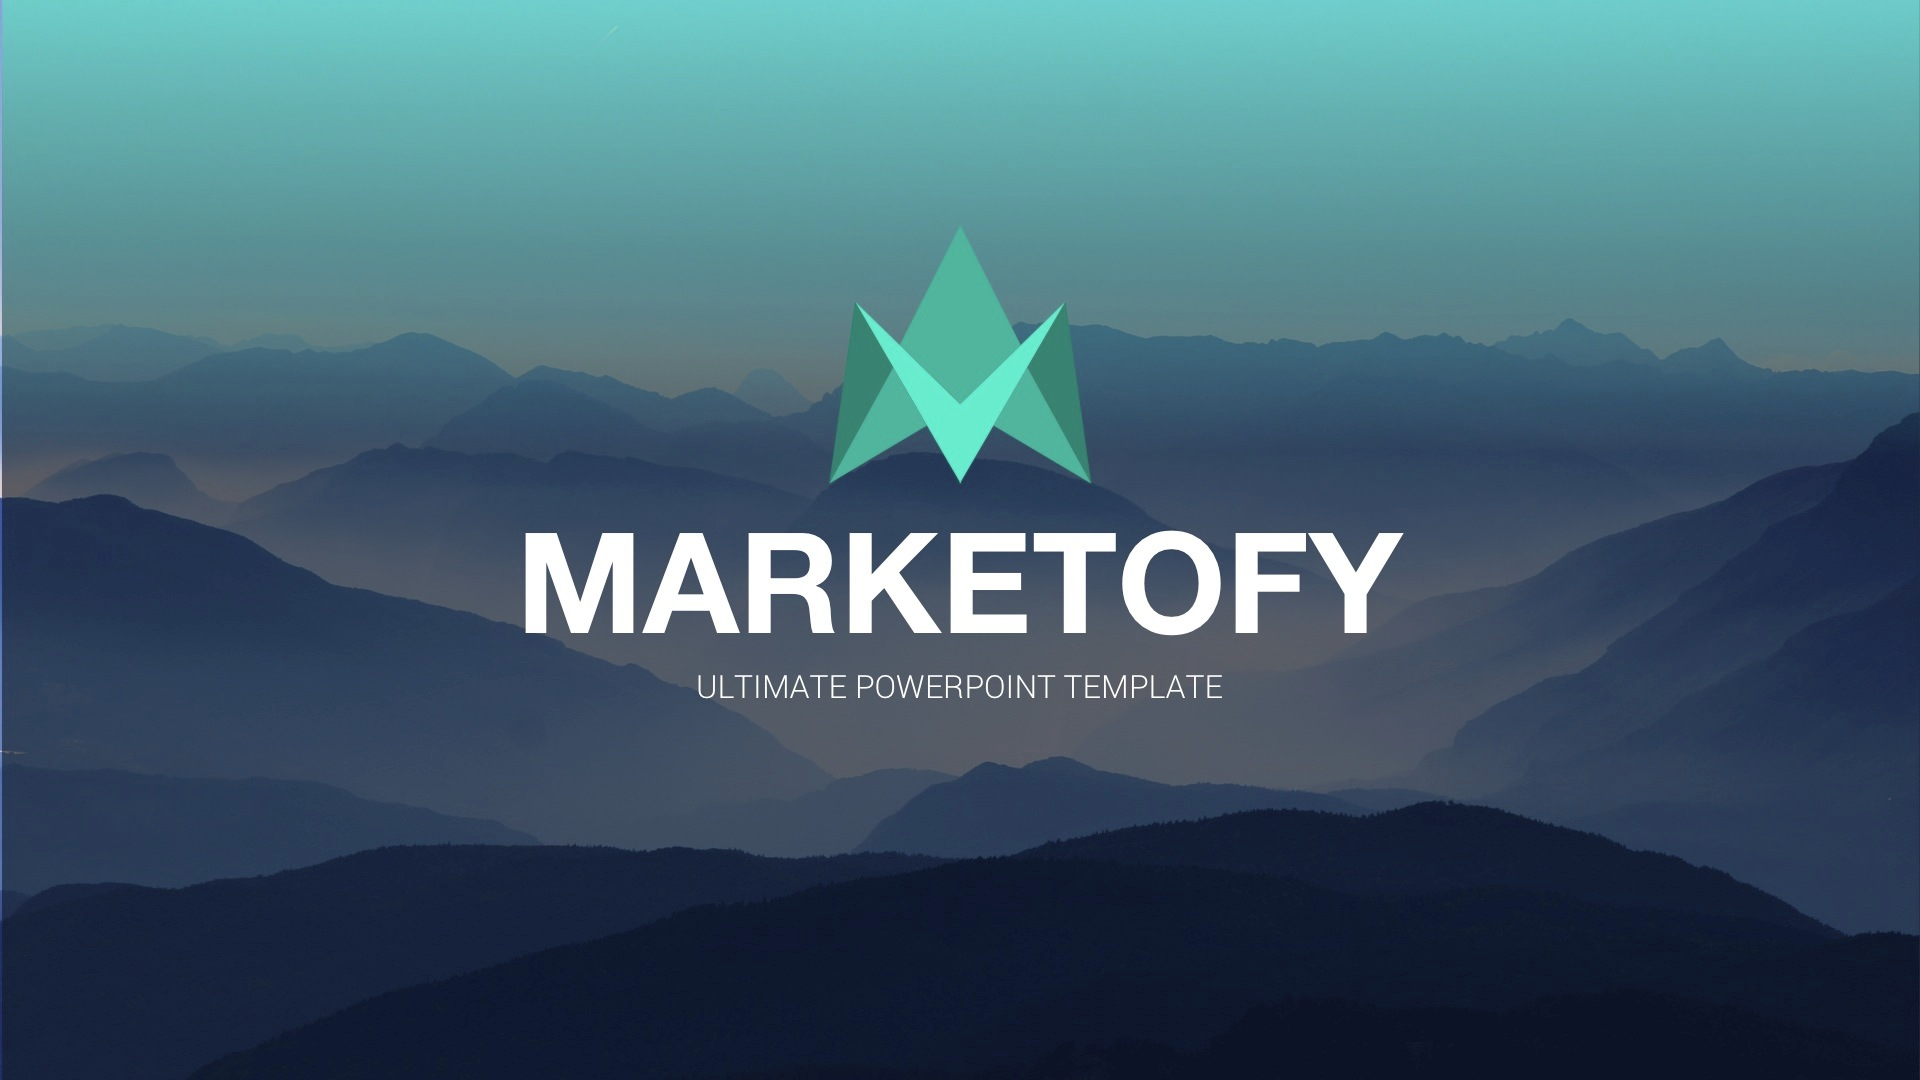 Marketofy ultimate powerpoint template by slidefusion graphicriver marketofy v2 screenshotsslide001g toneelgroepblik Choice Image